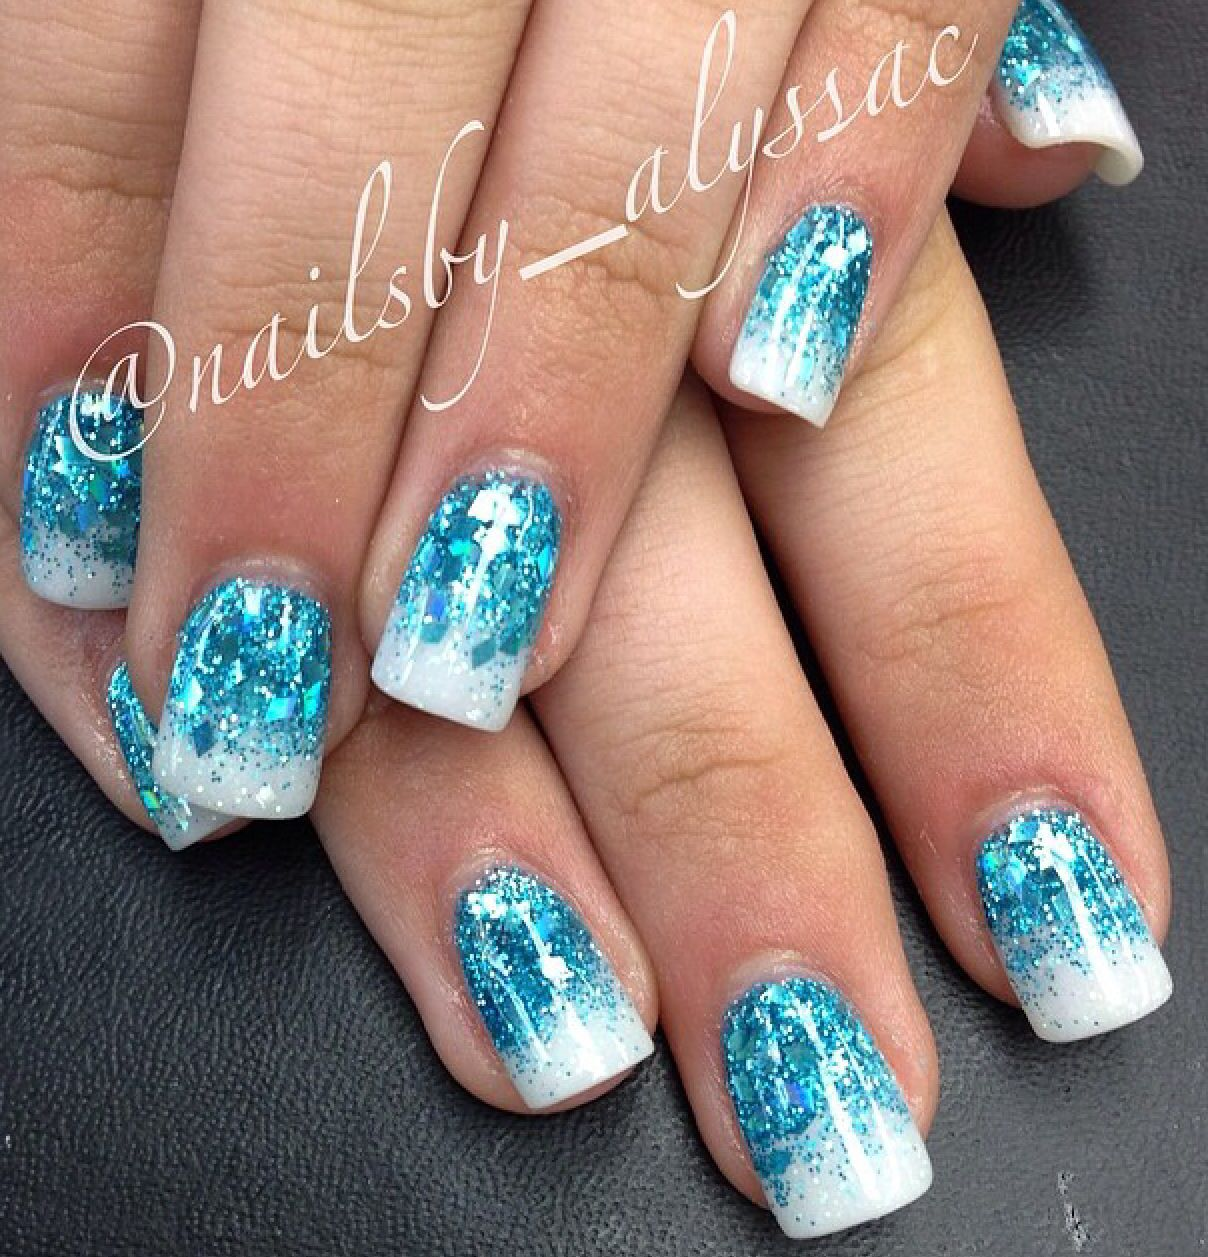 Frozen Inspired Nails Ice Blue Glitter Faded Into White Glitter Acrylics Solid Color Nails Done By A Blue Acrylic Nails Frozen Nail Art Nail Designs Glitter